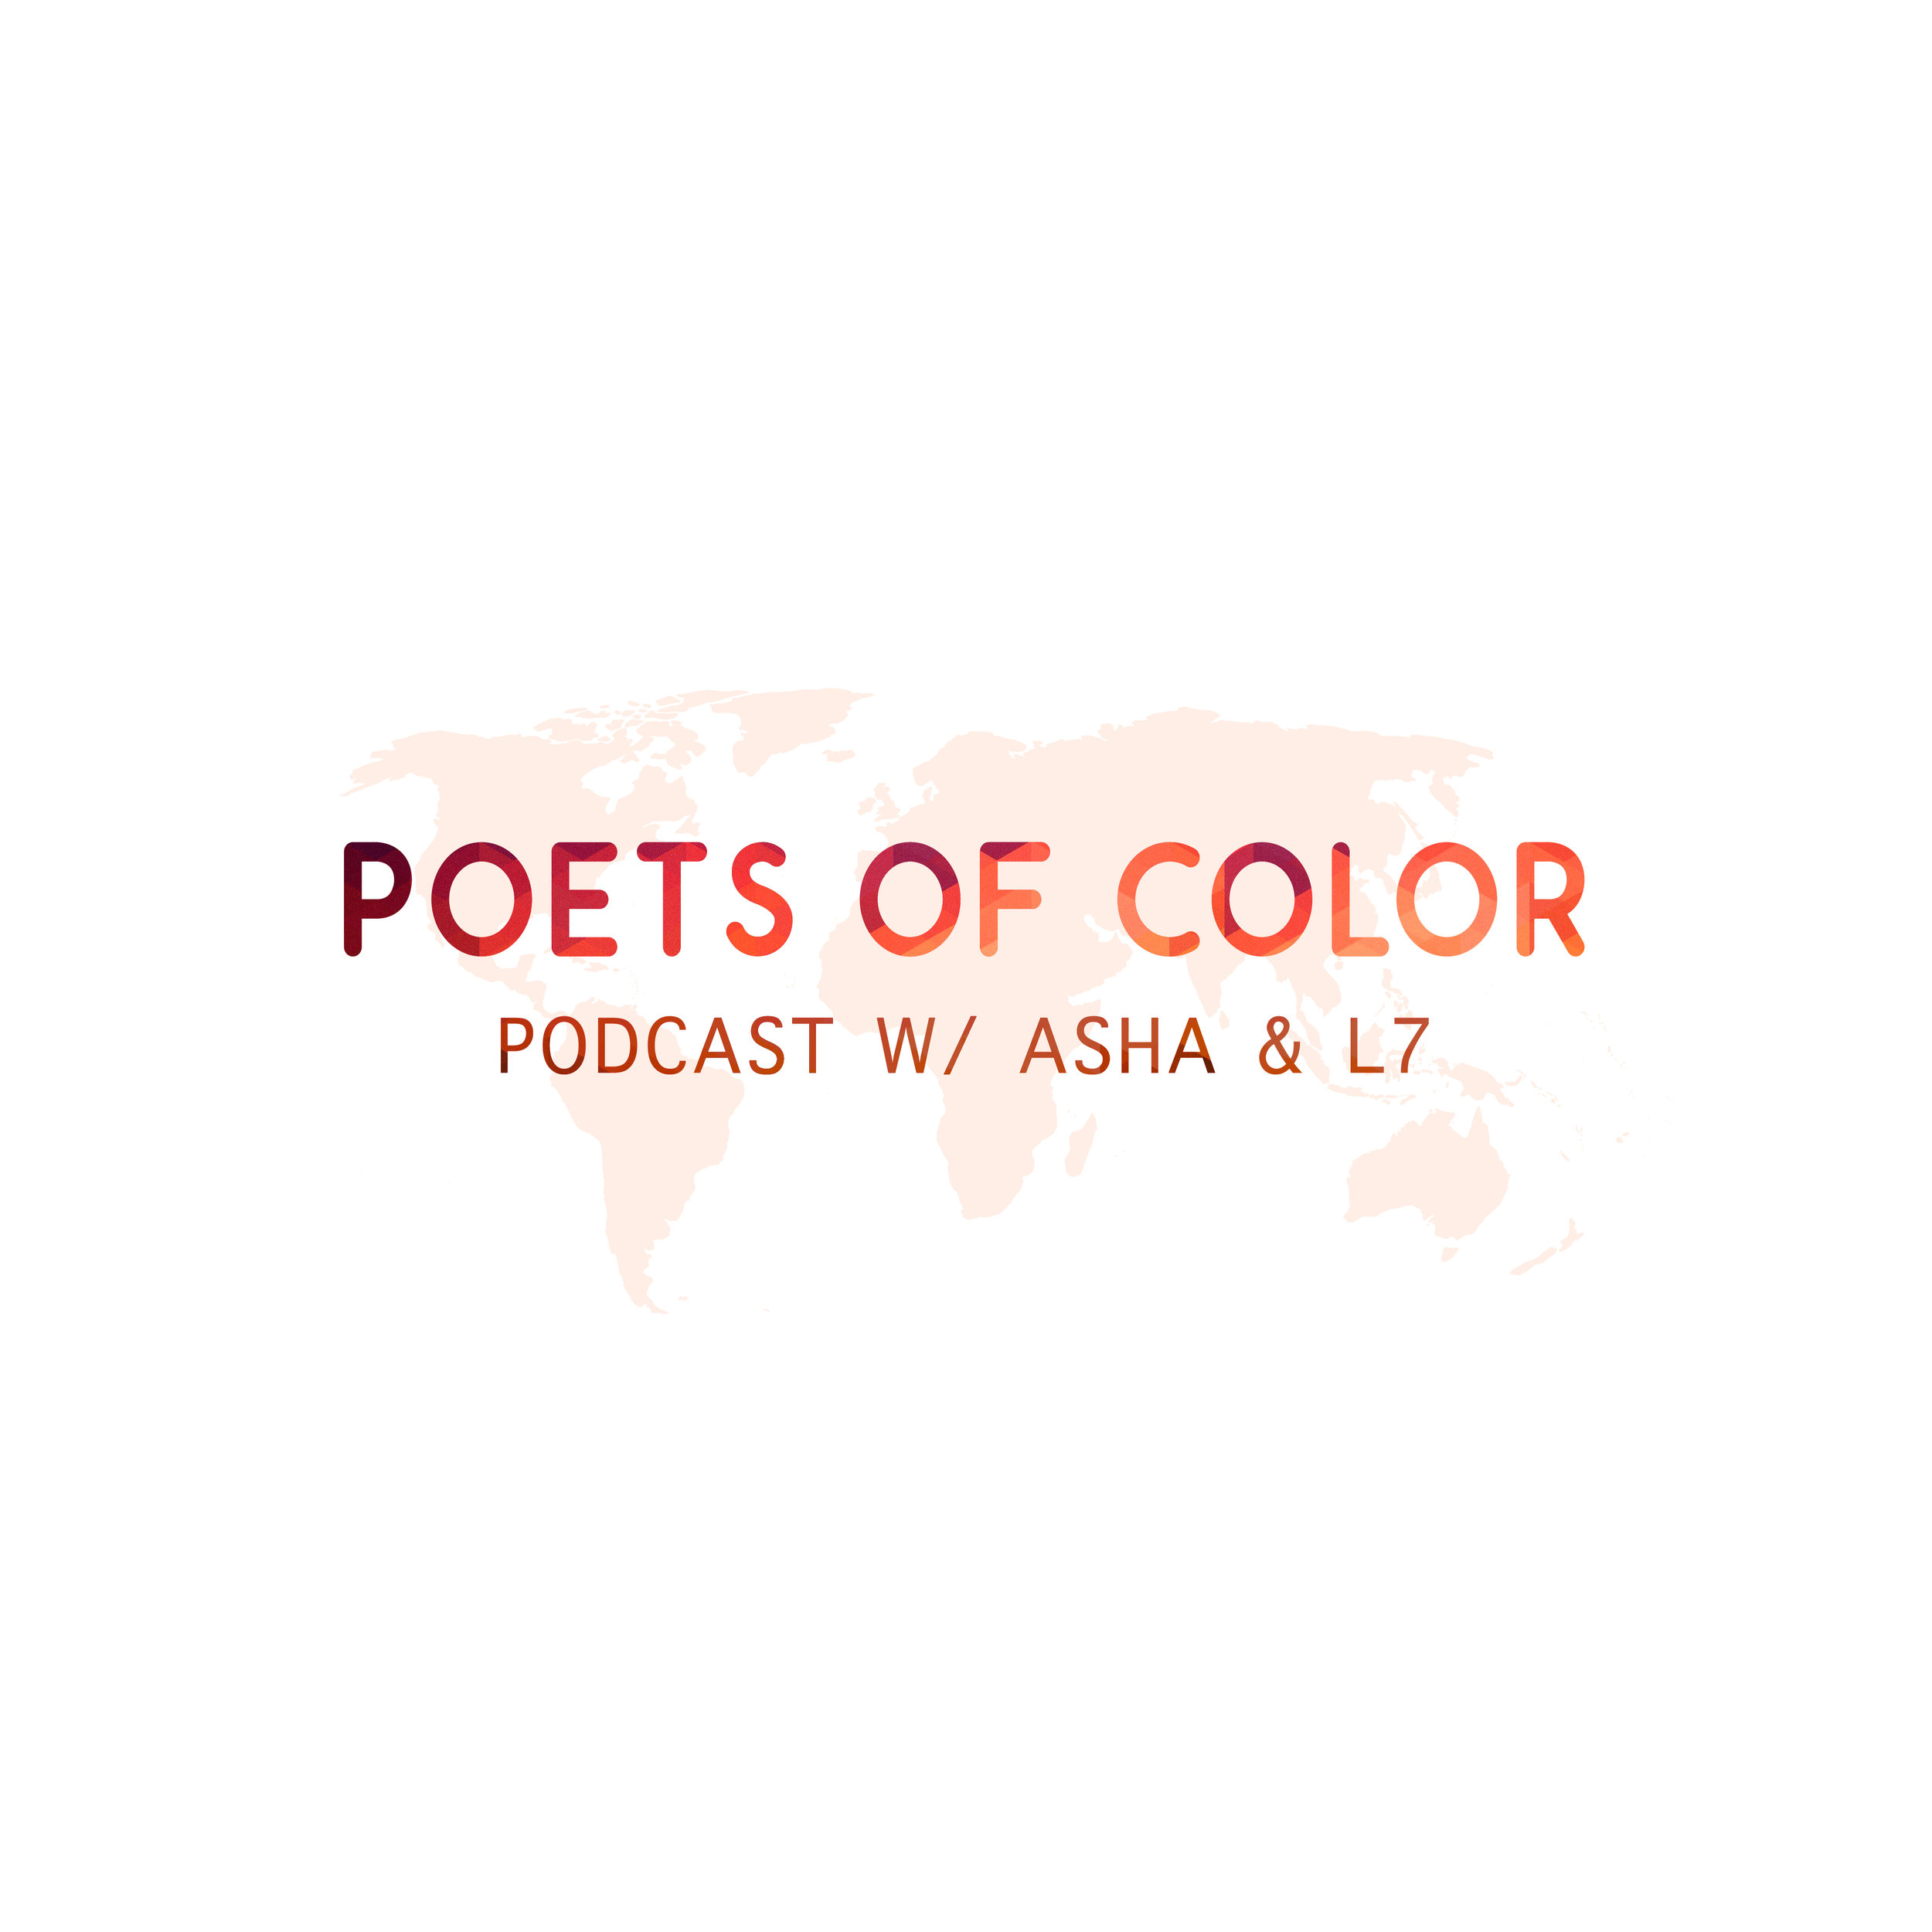 Arte Radio Podcast Poets Of Color Podcast